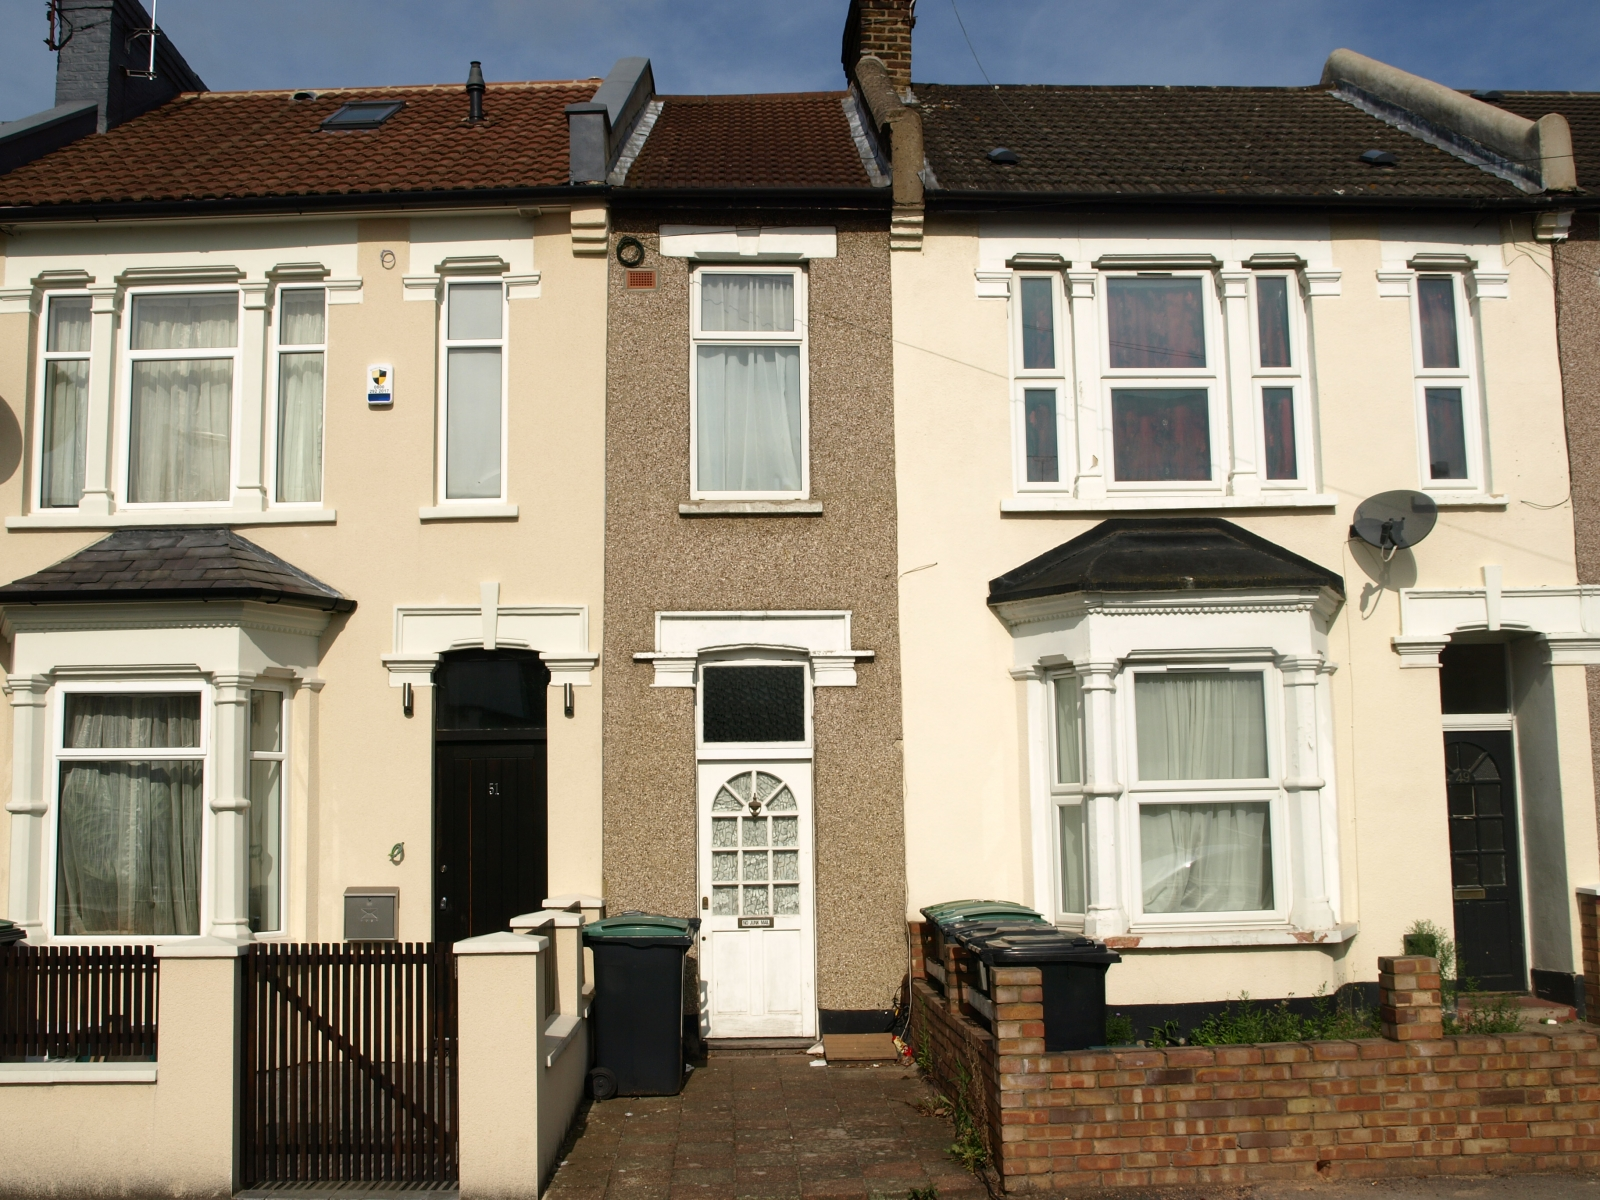 UK Housing Boom: £235,000 Will Buy You a 7-Foot Wide London House